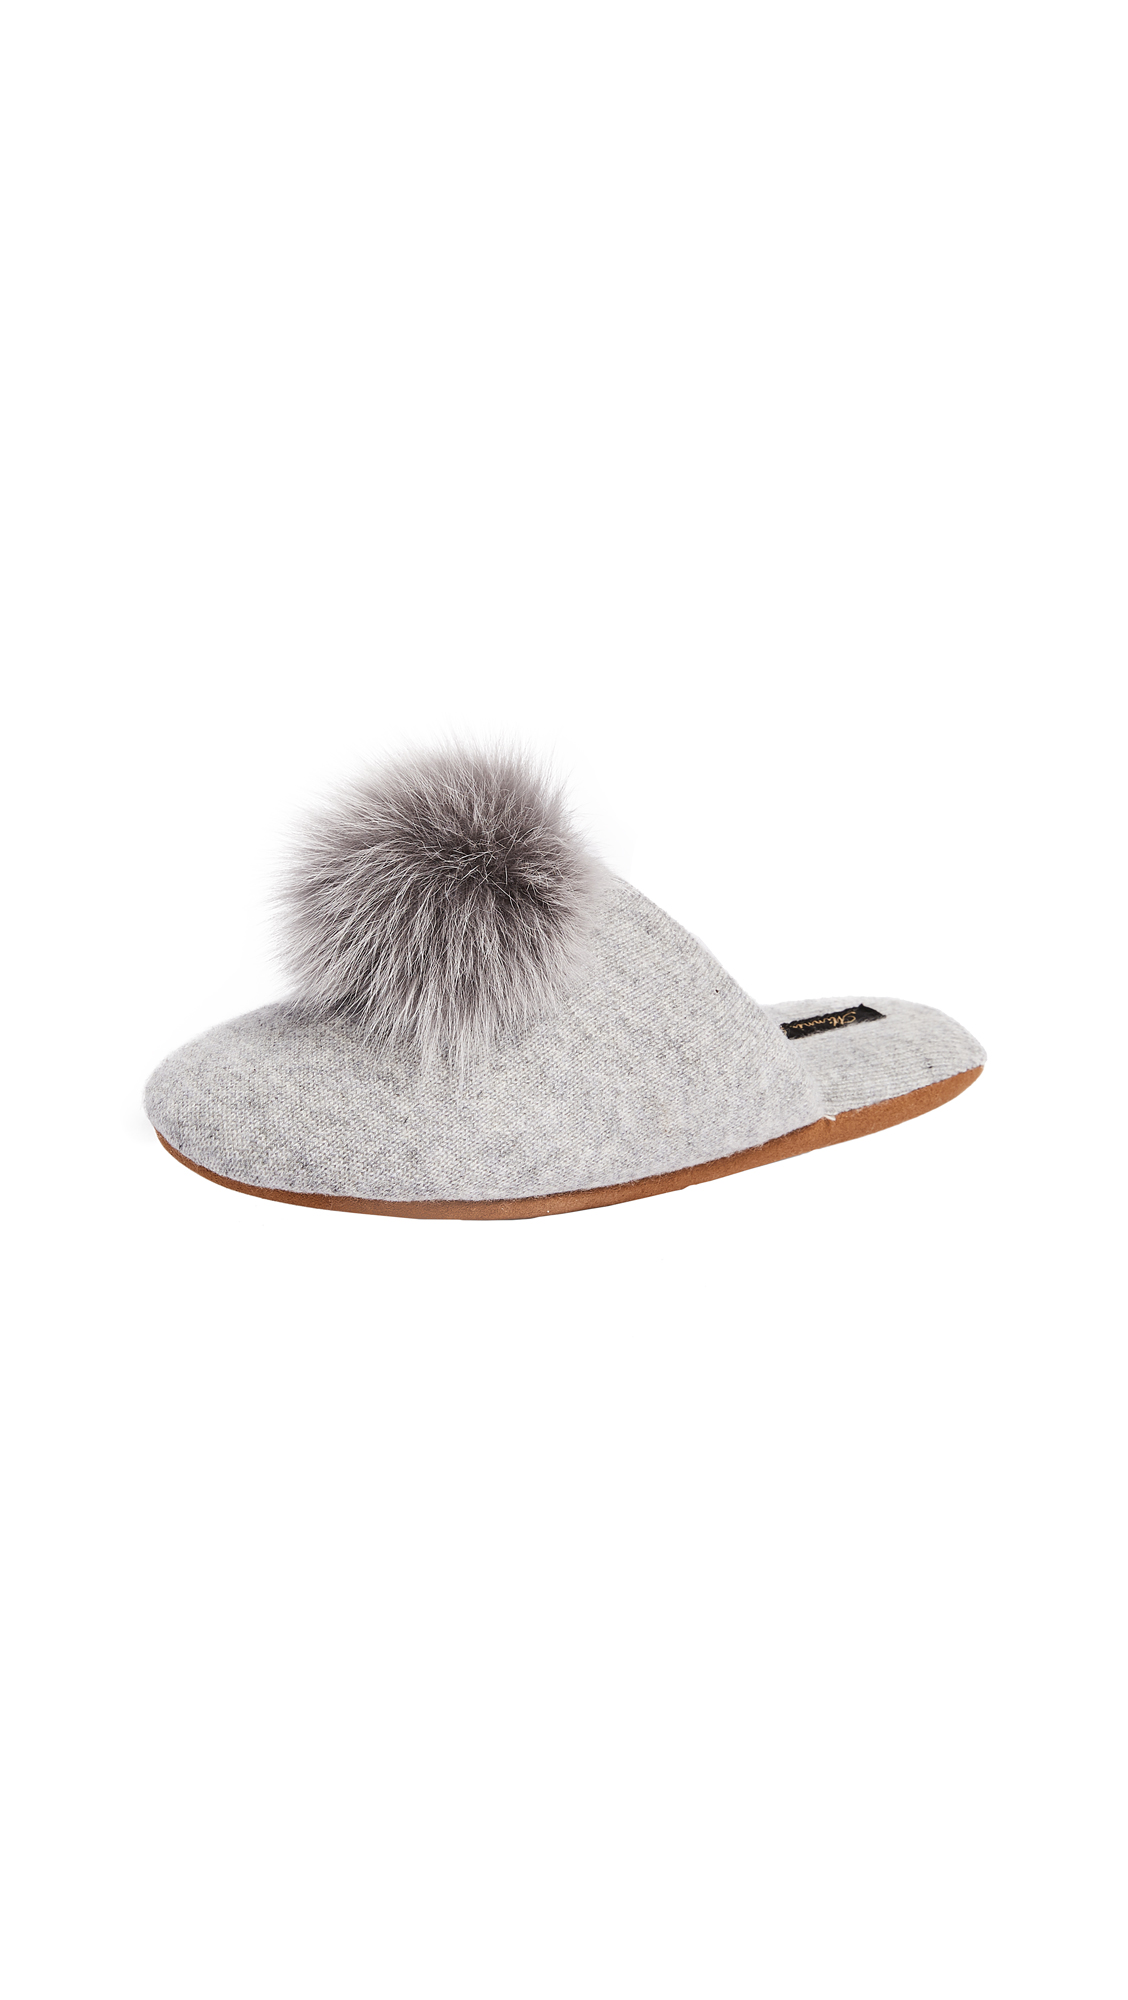 Minnie Rose Fox Pom Pom Slippers - Light Heather Grey